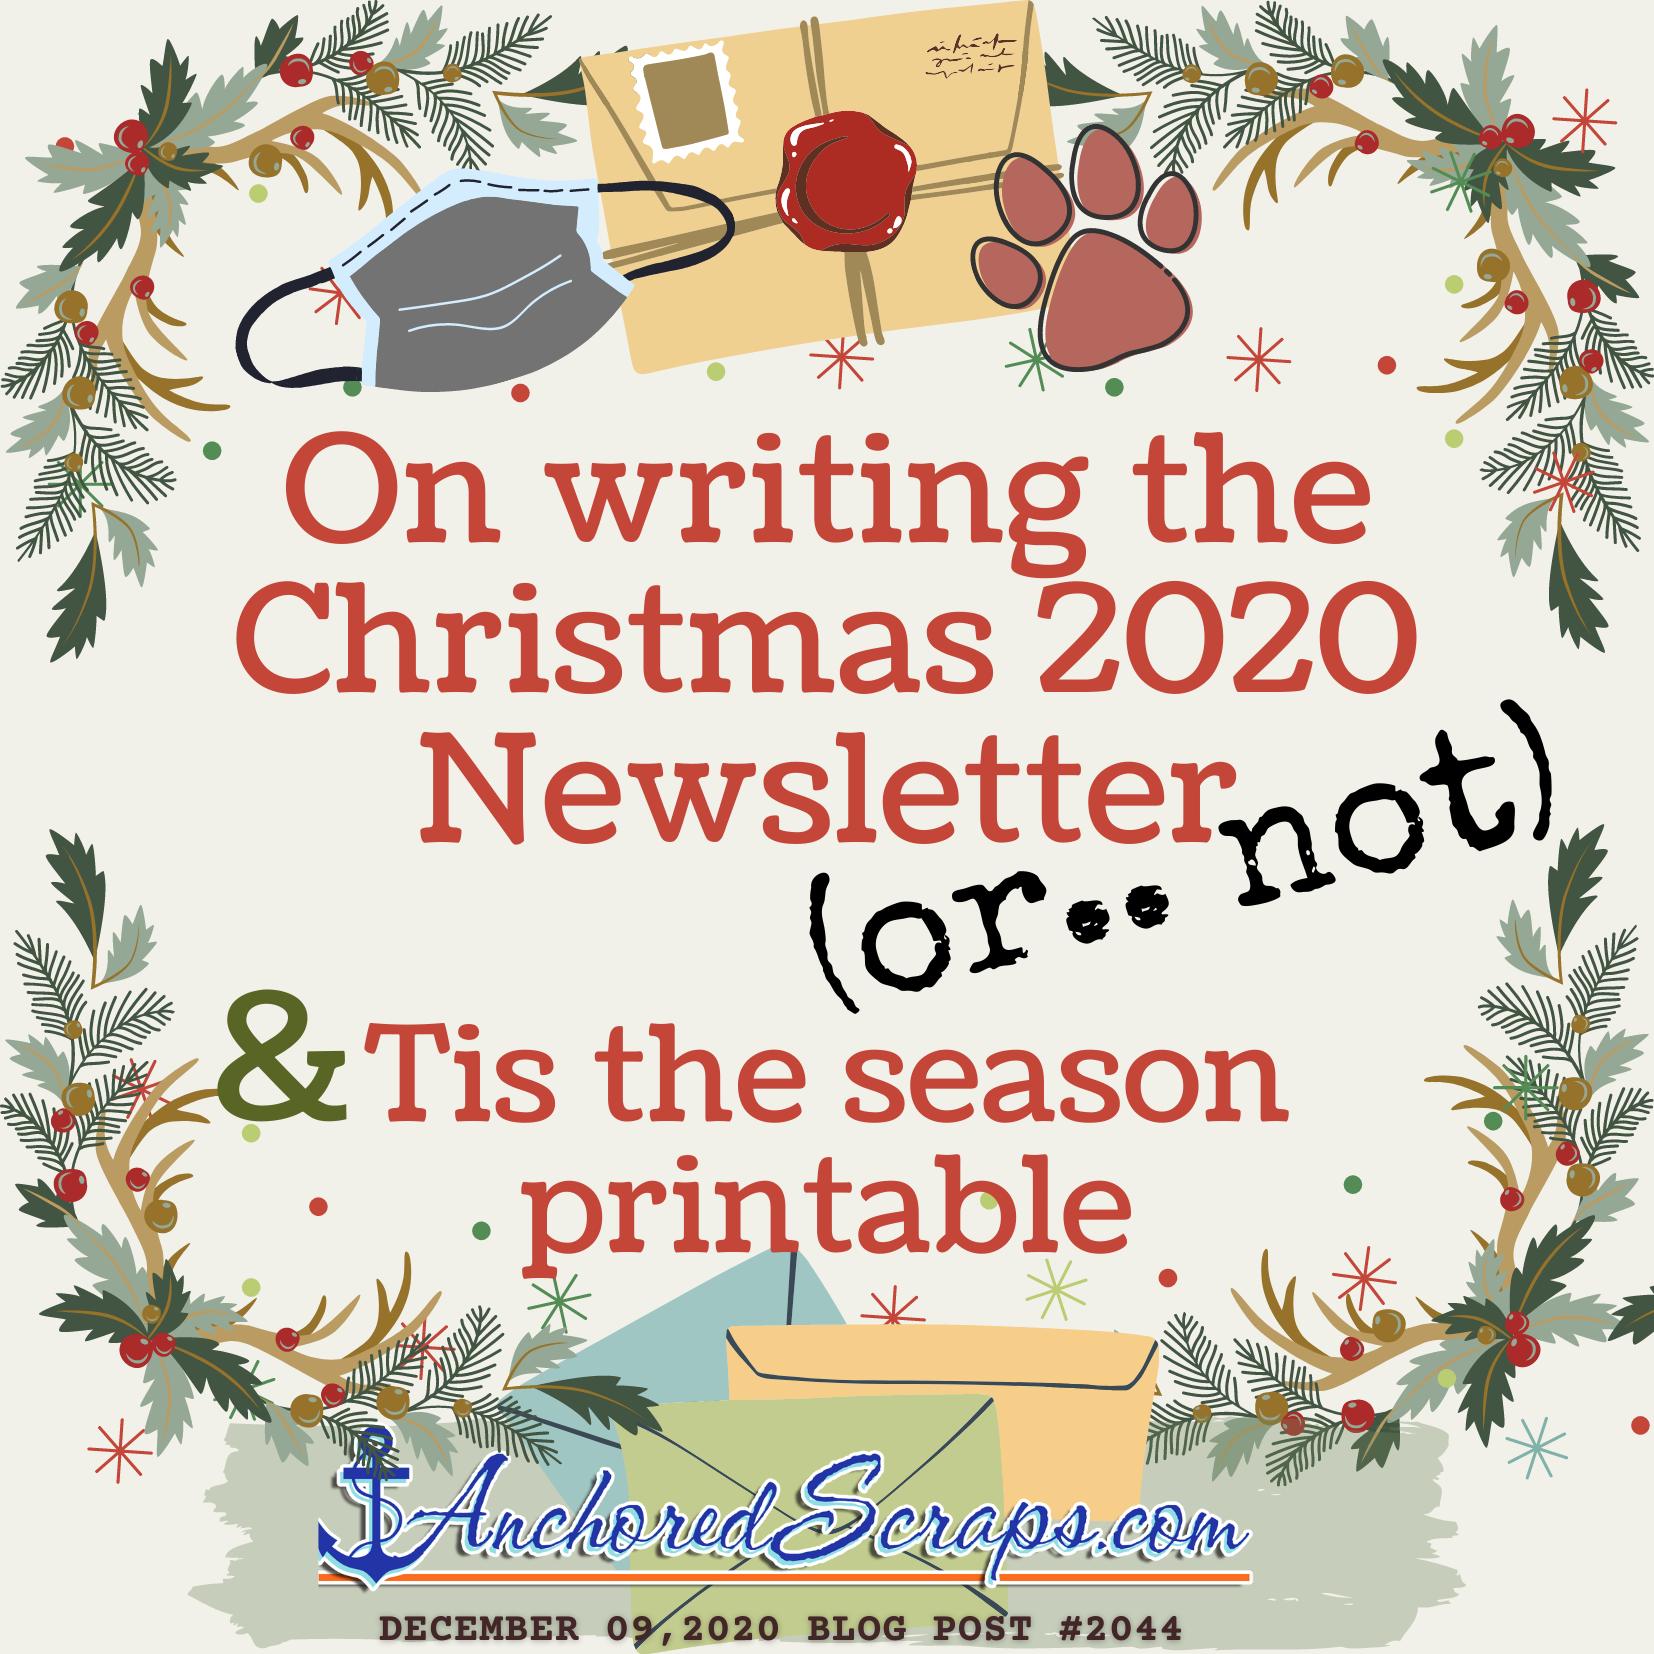 On writing the Christmas 2020 newsletter (or..not) & Tis the season printable AnchoredScraps blog post title #2044